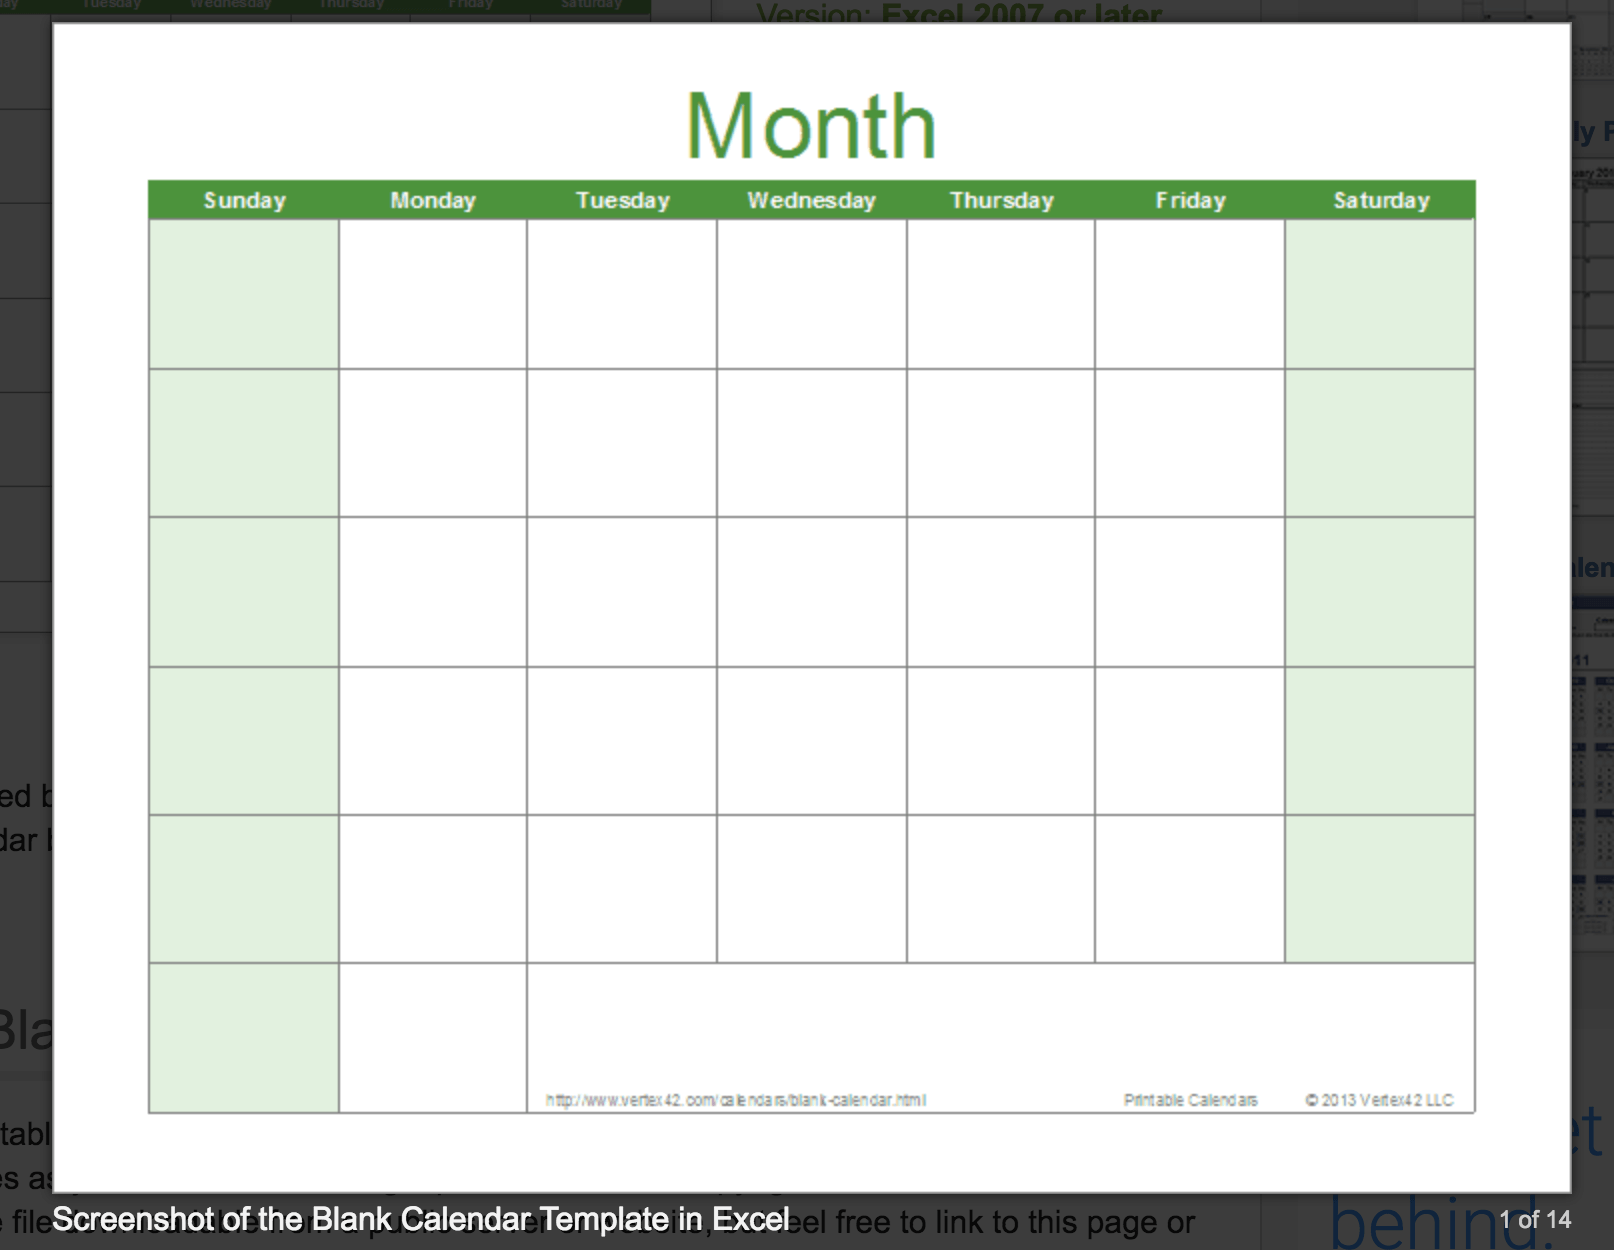 You can also download a blank calendar template for Microsoft Excel from Vertex42